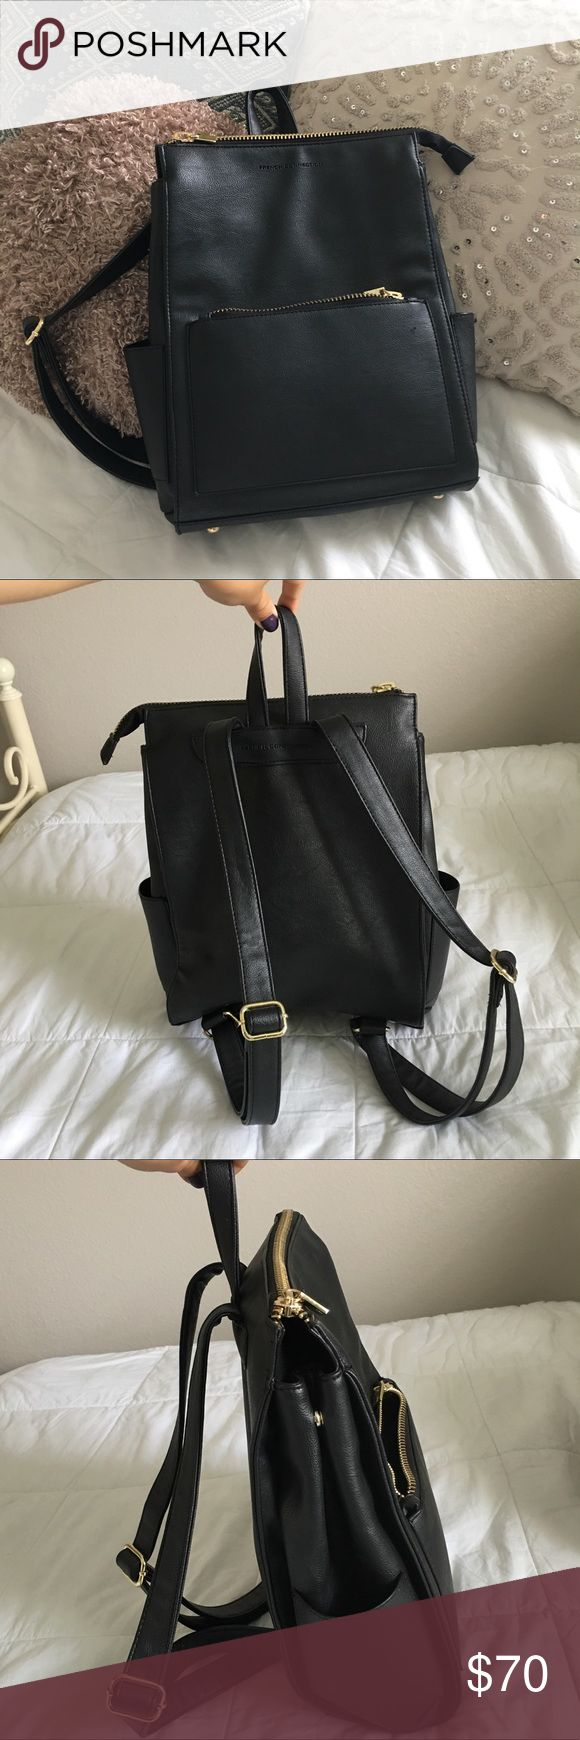 French Connection Leather Backpack Purse Only used a couple of times. Brand new condition. Adjustable snaps on the side to make it bag expand bigger. Lots of pockets, can fit a lot, and super cute ! Originally bought from asos. 😊💕 French Connection Bags Backpacks